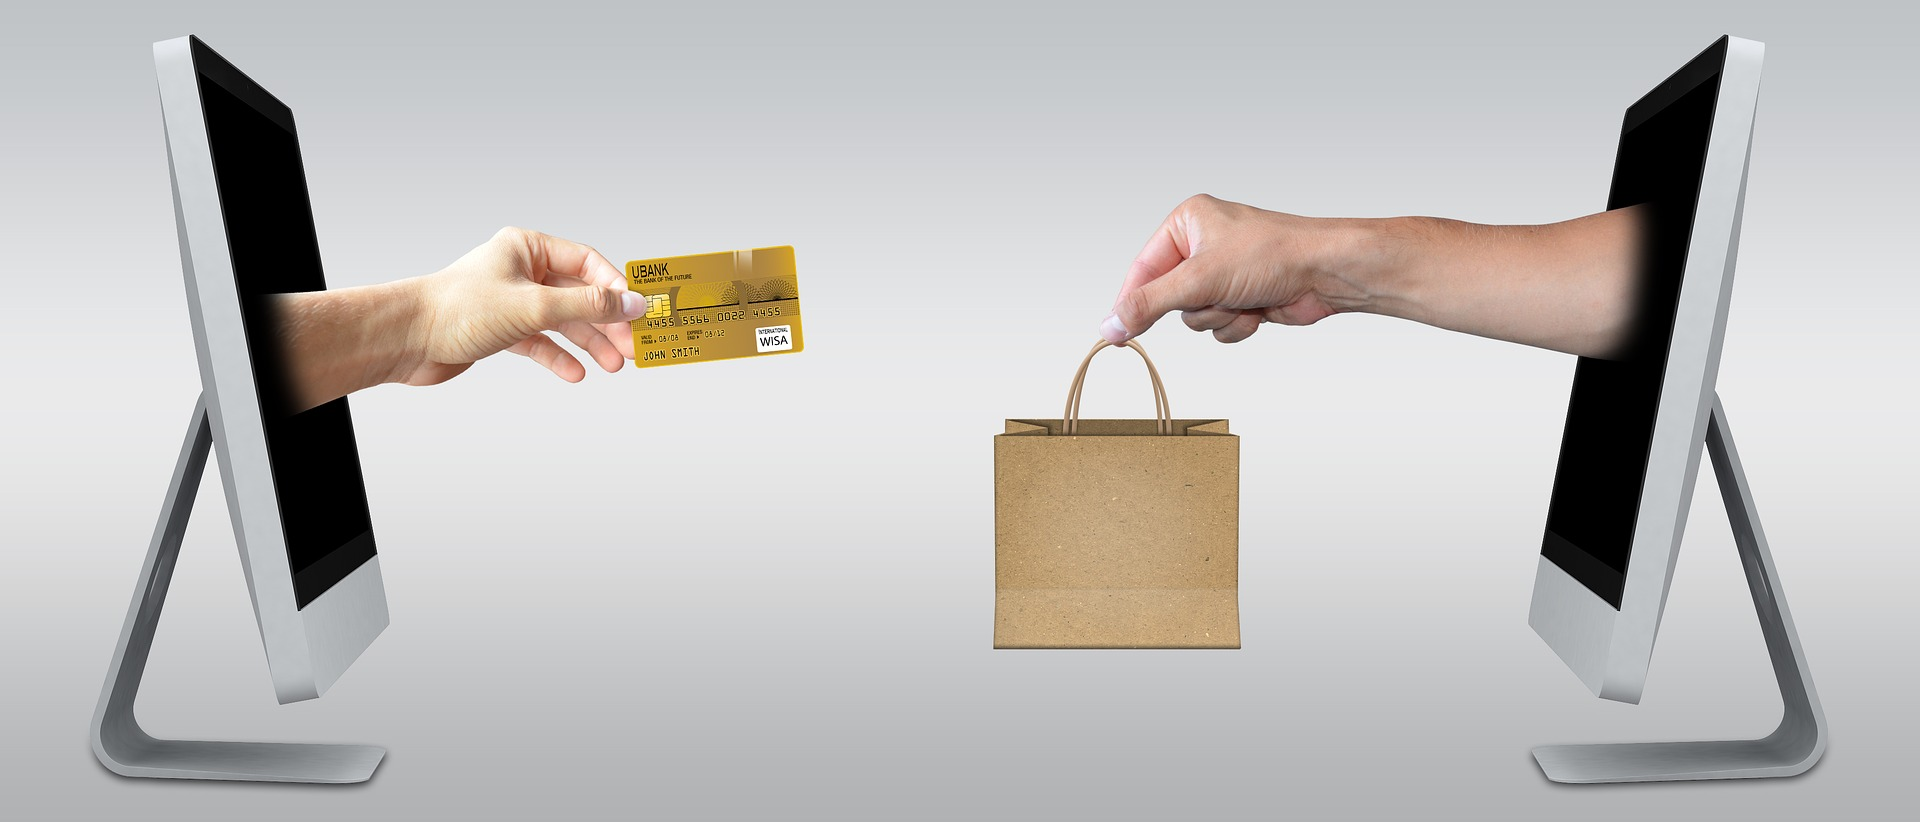 Ecommerce icons credit card and shopping bag leaping out from computer screens